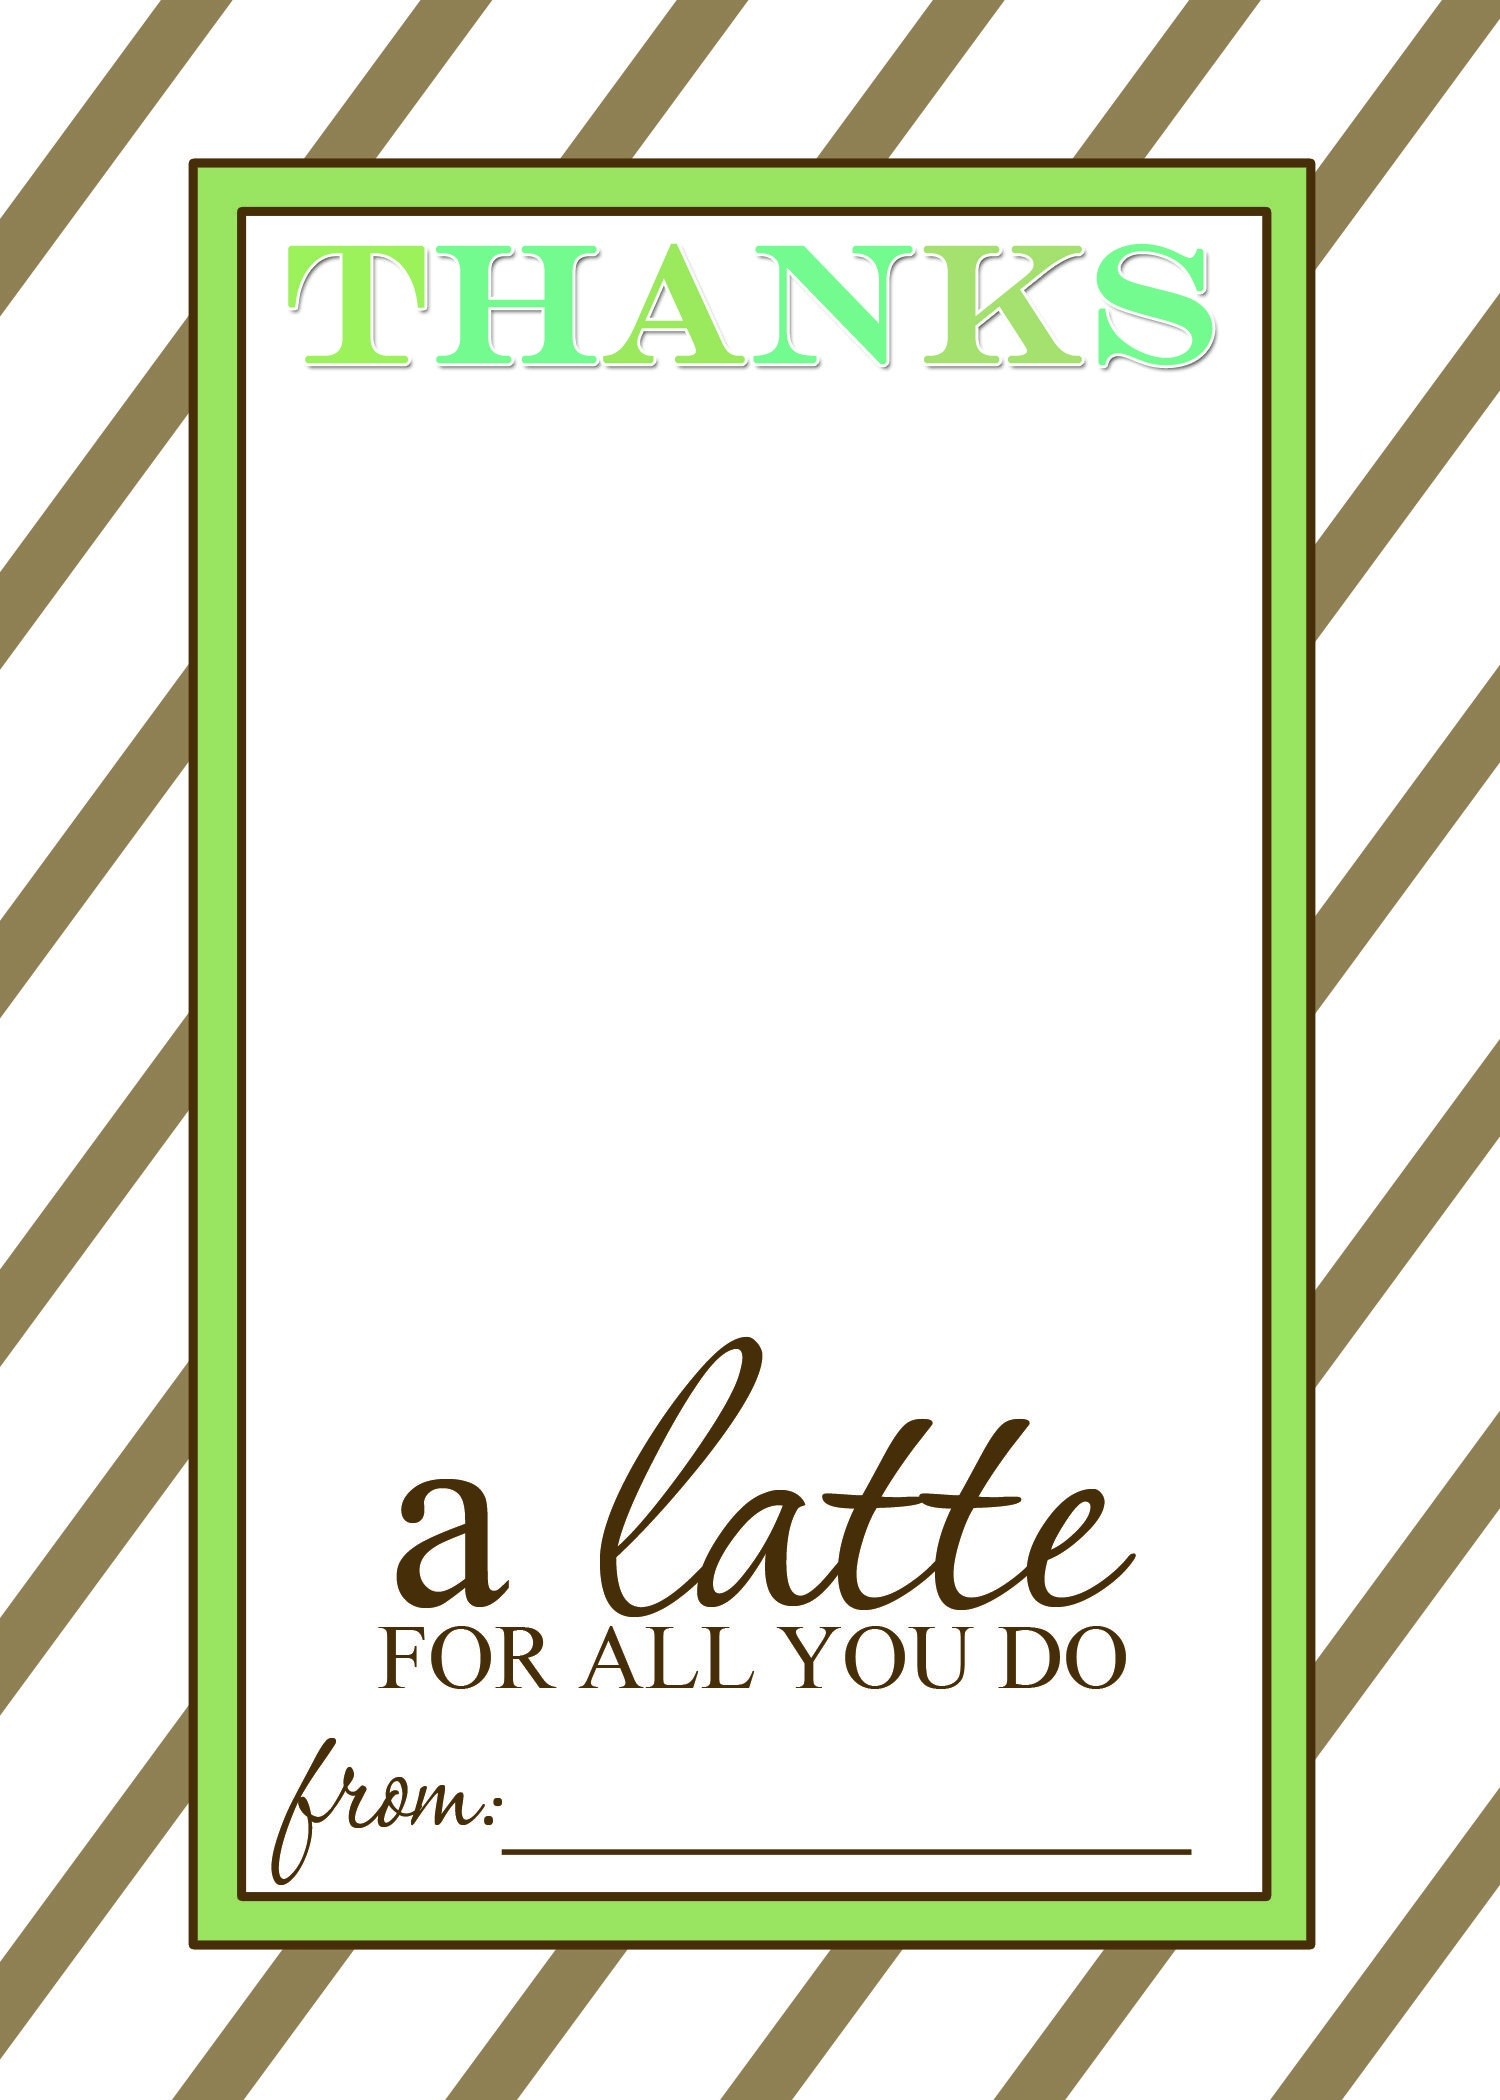 Thanks A Latte Free Printable Gift Card Holder Teacher Gift | Las - Thanks A Latte Free Printable Card